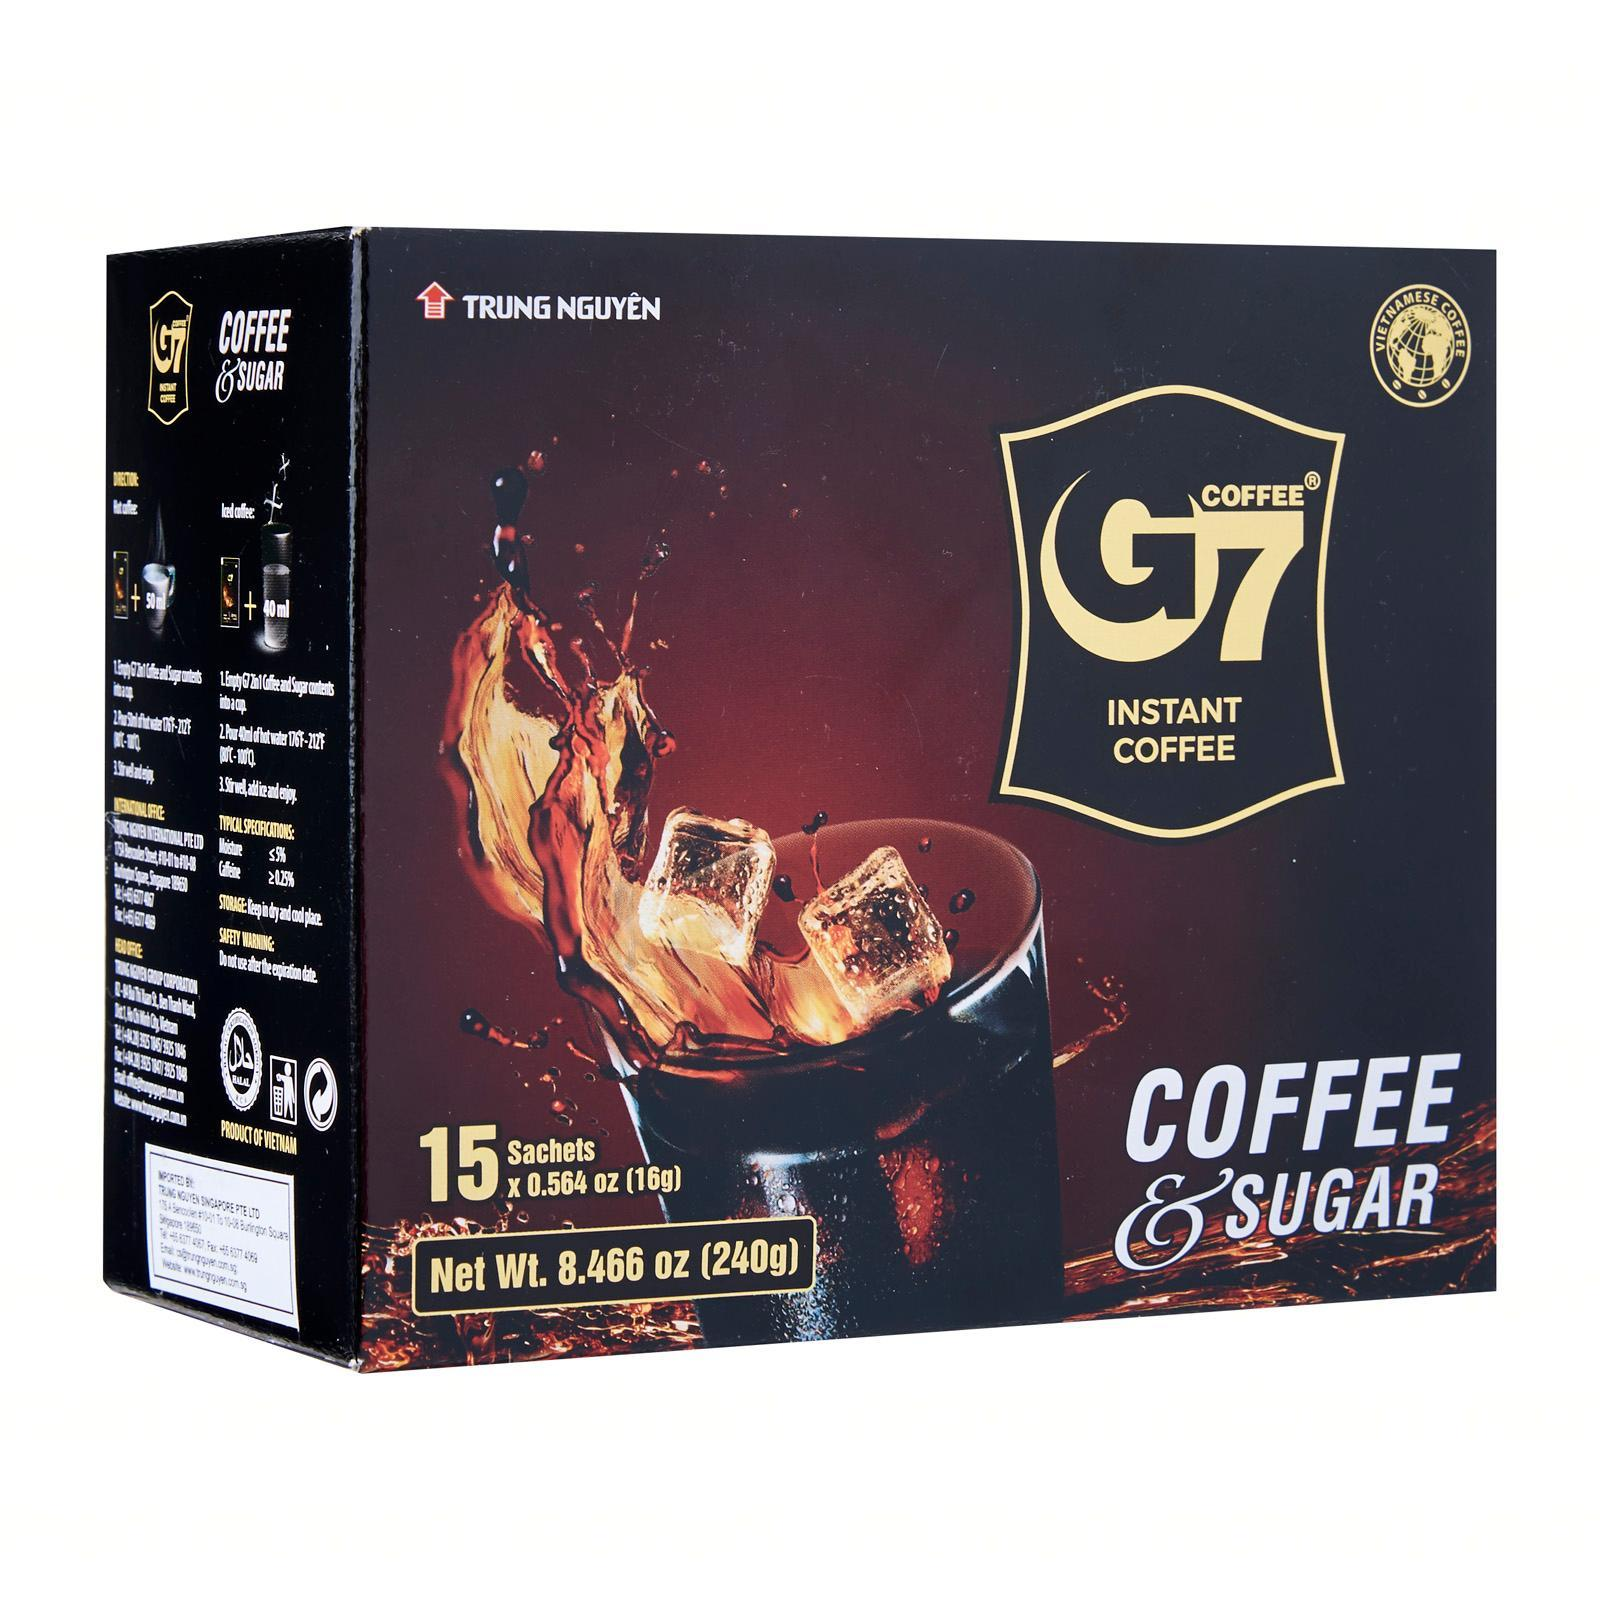 G7 2in1 Coffee and Sugar - 15s